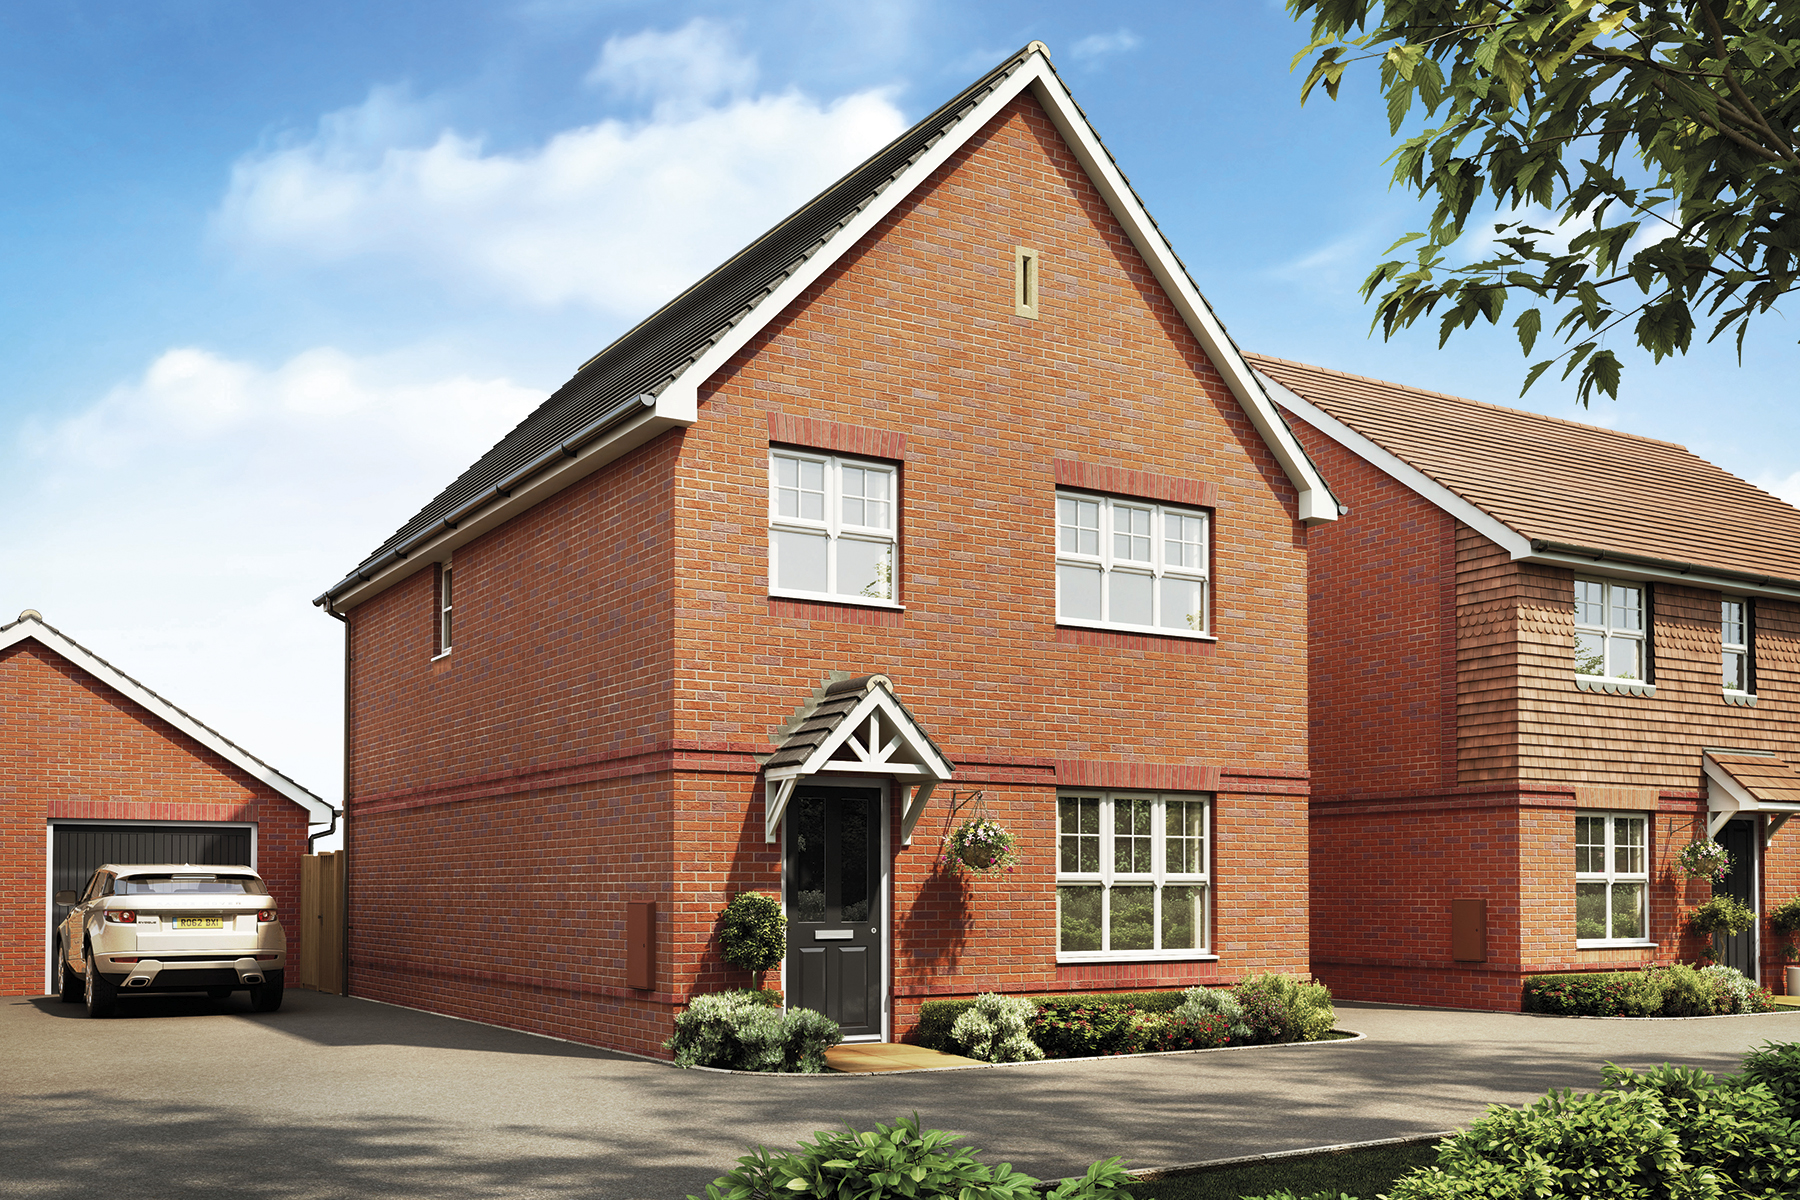 Artists impression of a typical Midford home